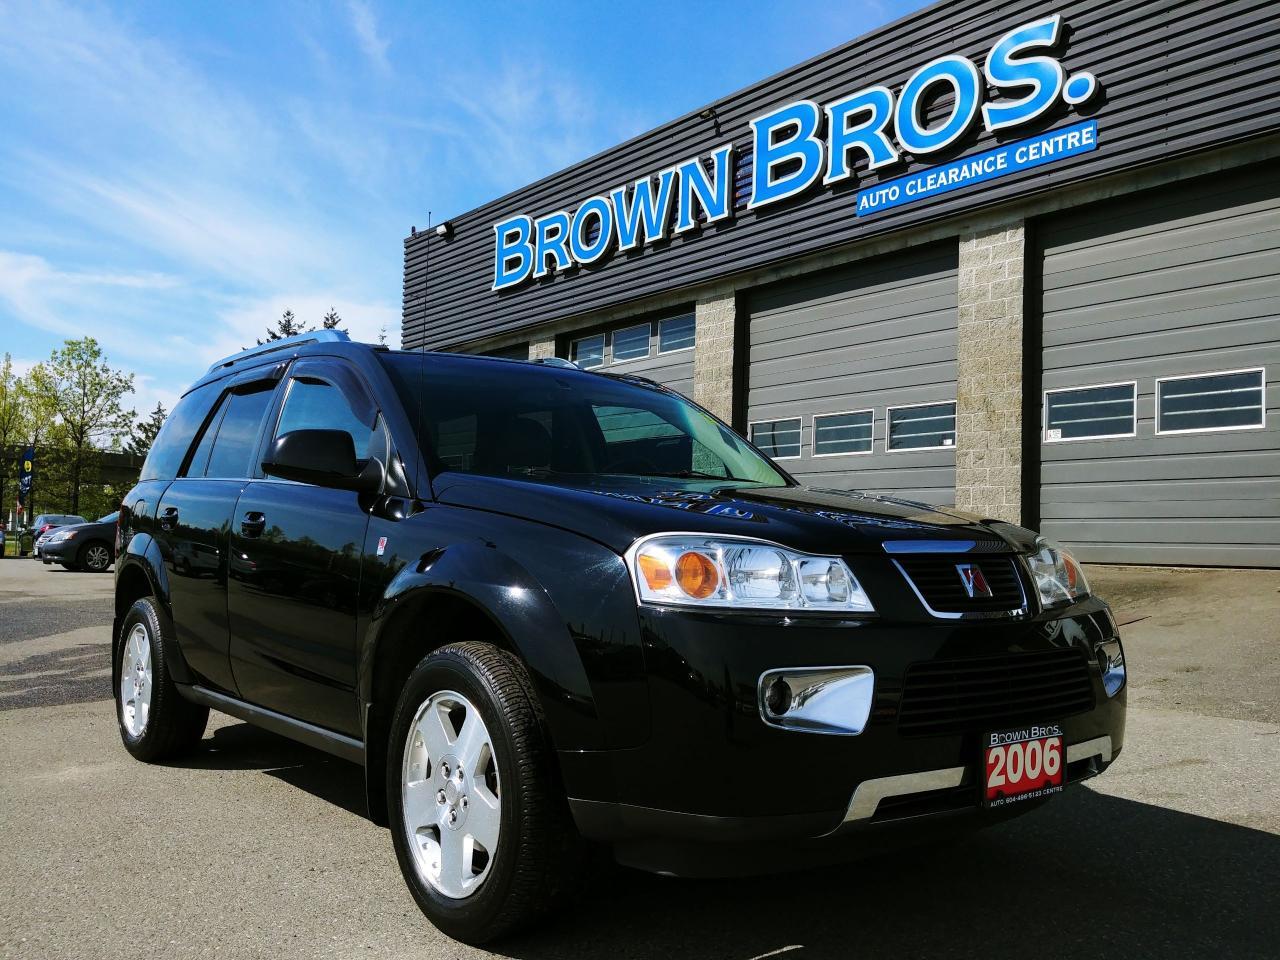 2006 Saturn Vue Brown Bros Auto Clearance Centre Commercial